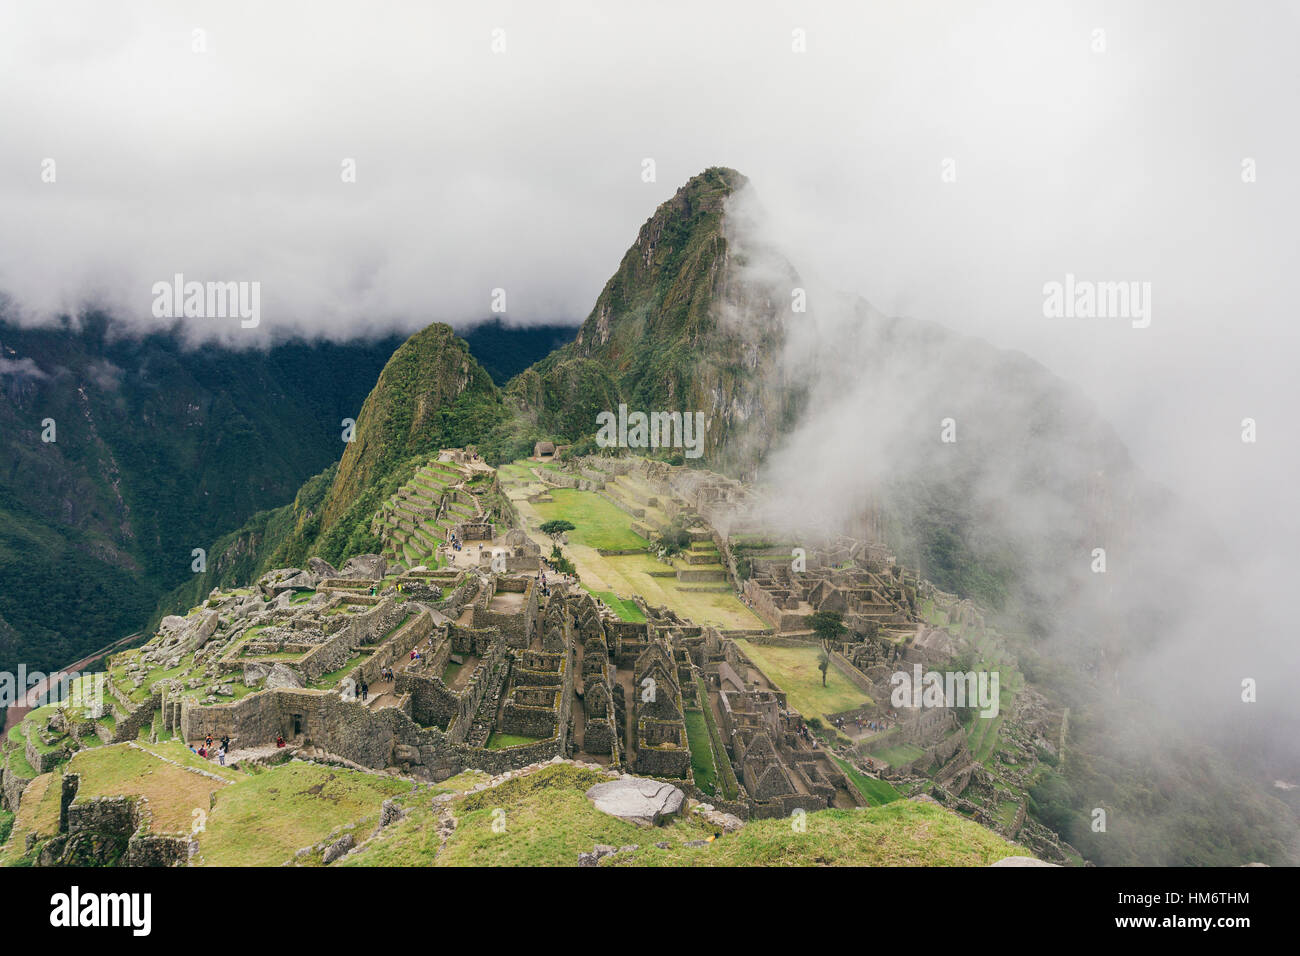 Aerial view of machu picchu with Mt huayna picchu during foggy weather - Stock Image